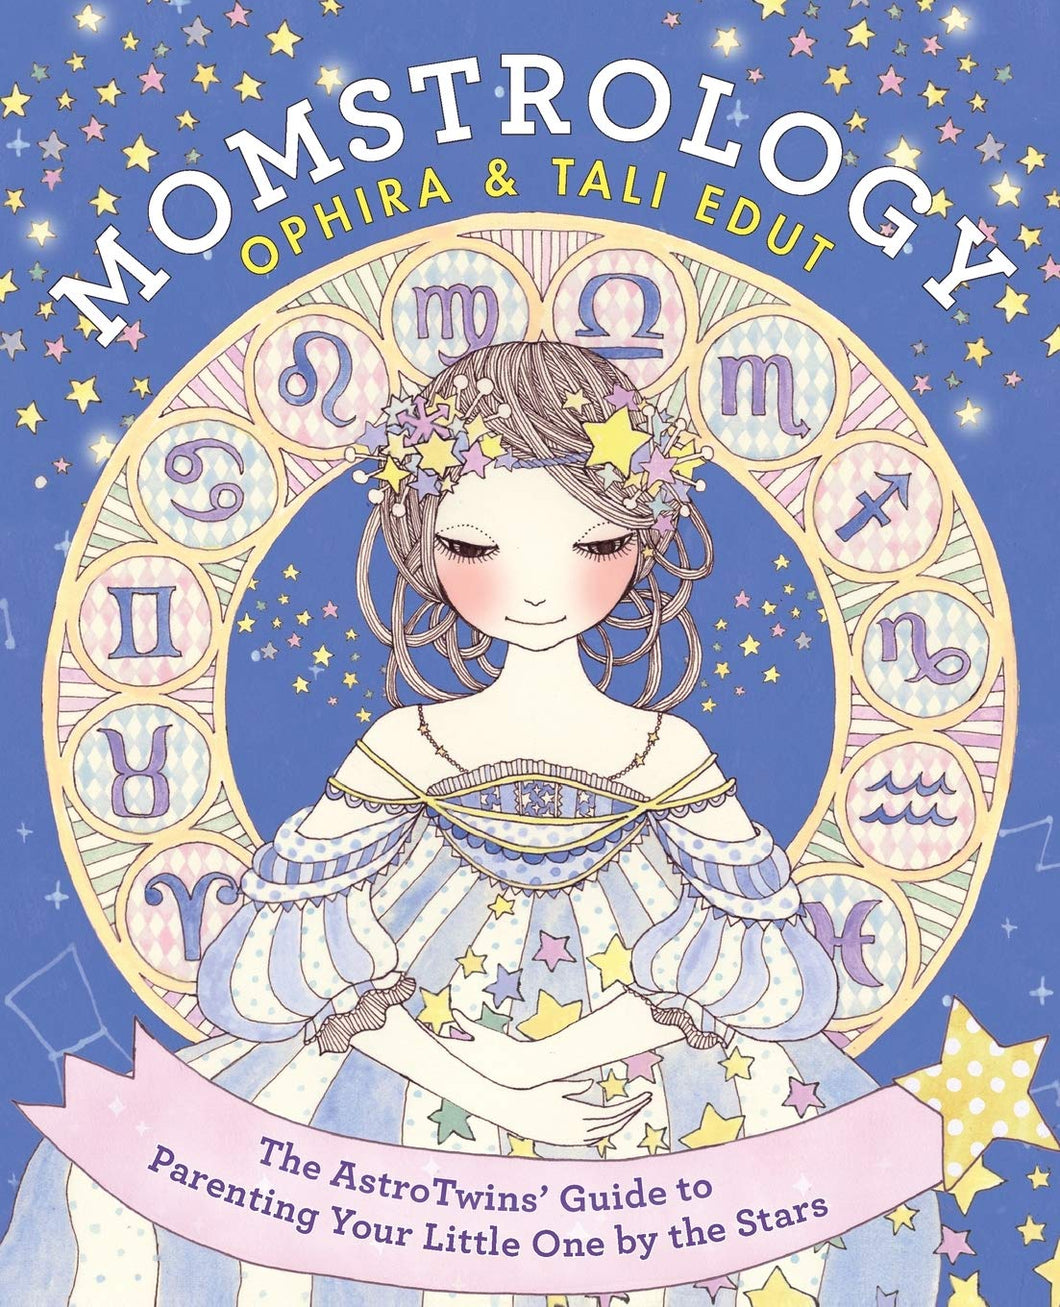 Momstrology: The AstroTwins' Guide to Parenting Your Little One by the Stars